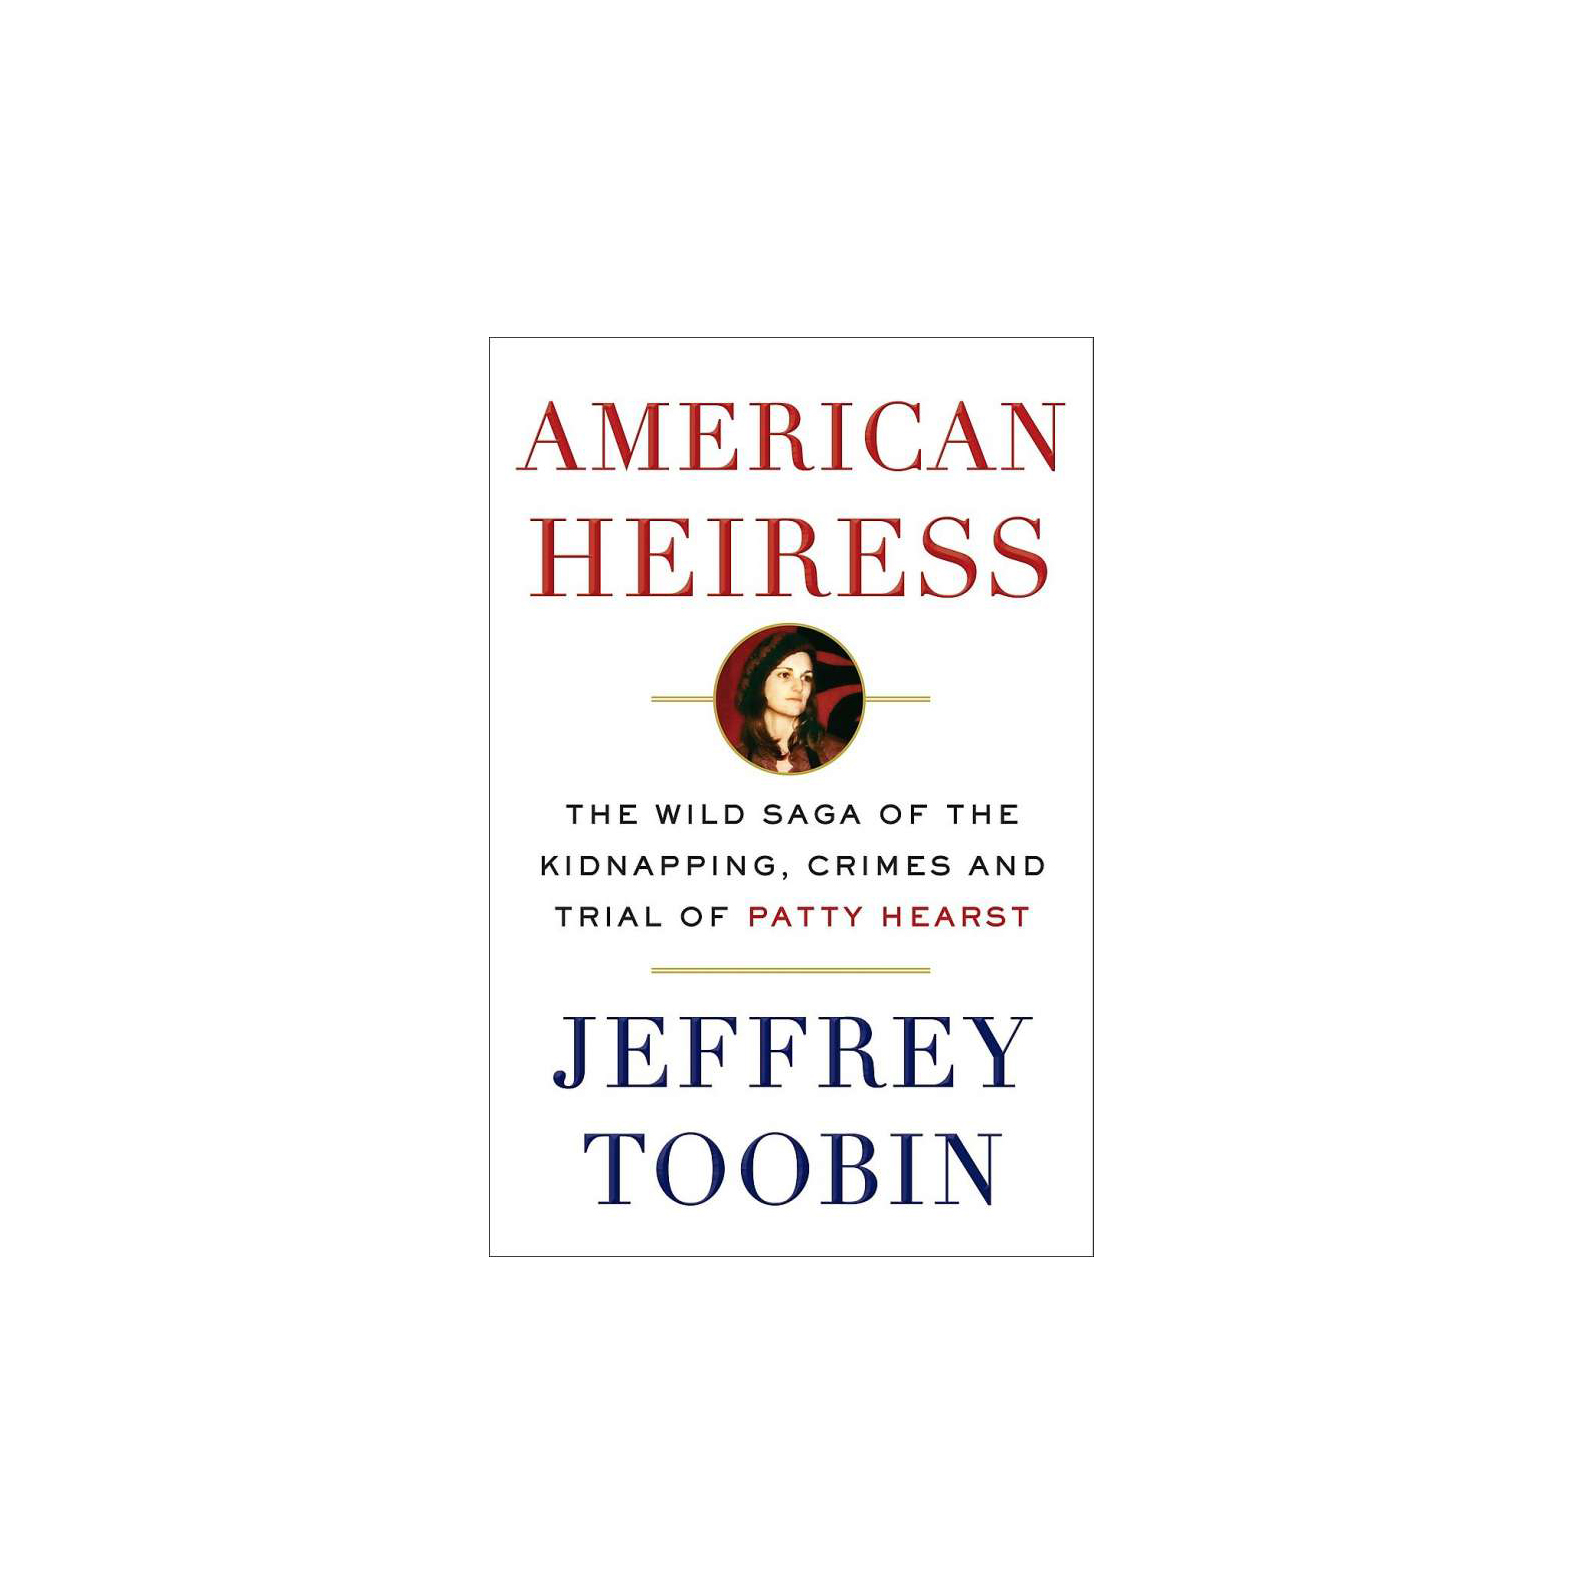 American Heiress, by Jeffrey Toobin